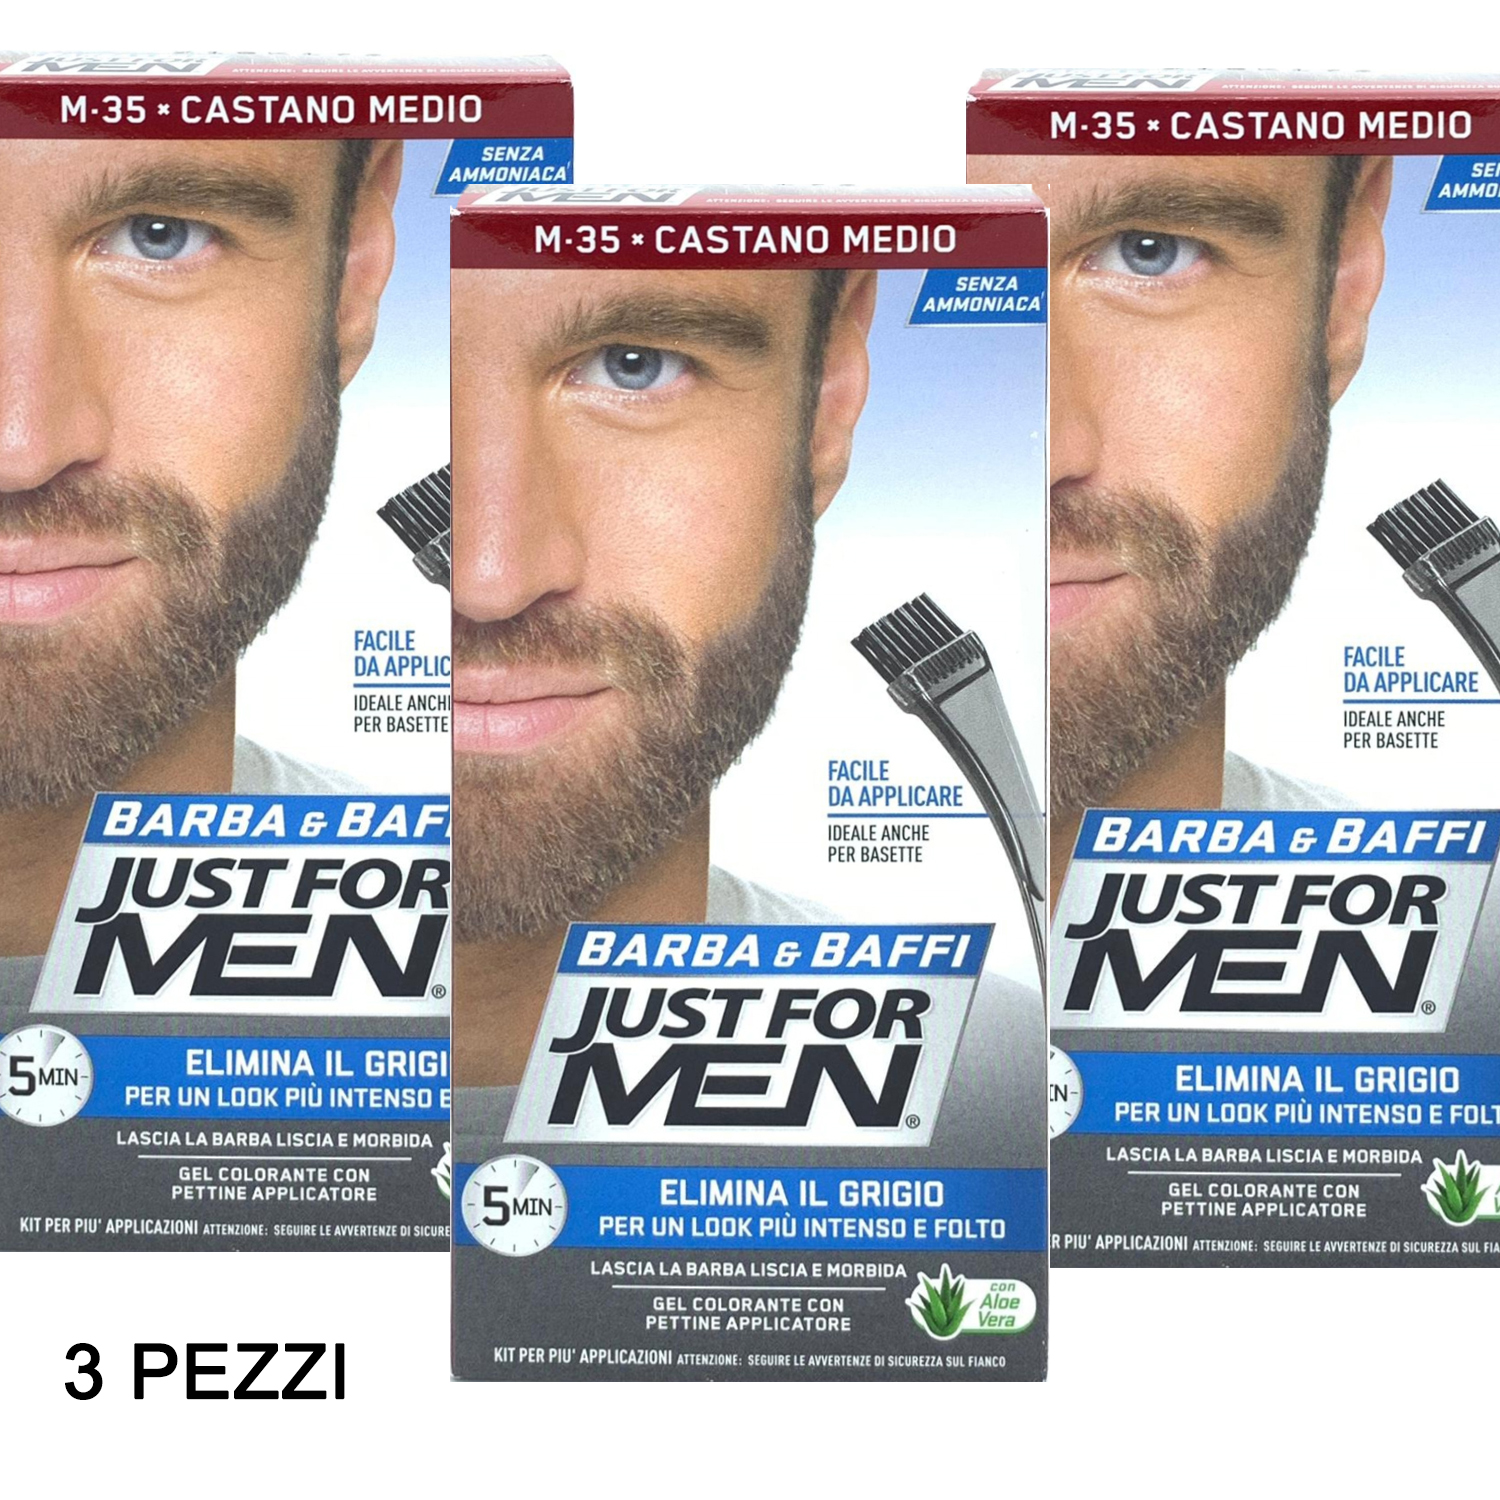 3 X JUST FOR MEN BARBA E BAFFI COLORE TINTURA PERMANENTE CON PENNELLO SENZA AMMONIACA CASTANO MEDIO M-35 2X 14 ML GEL COLORANTE